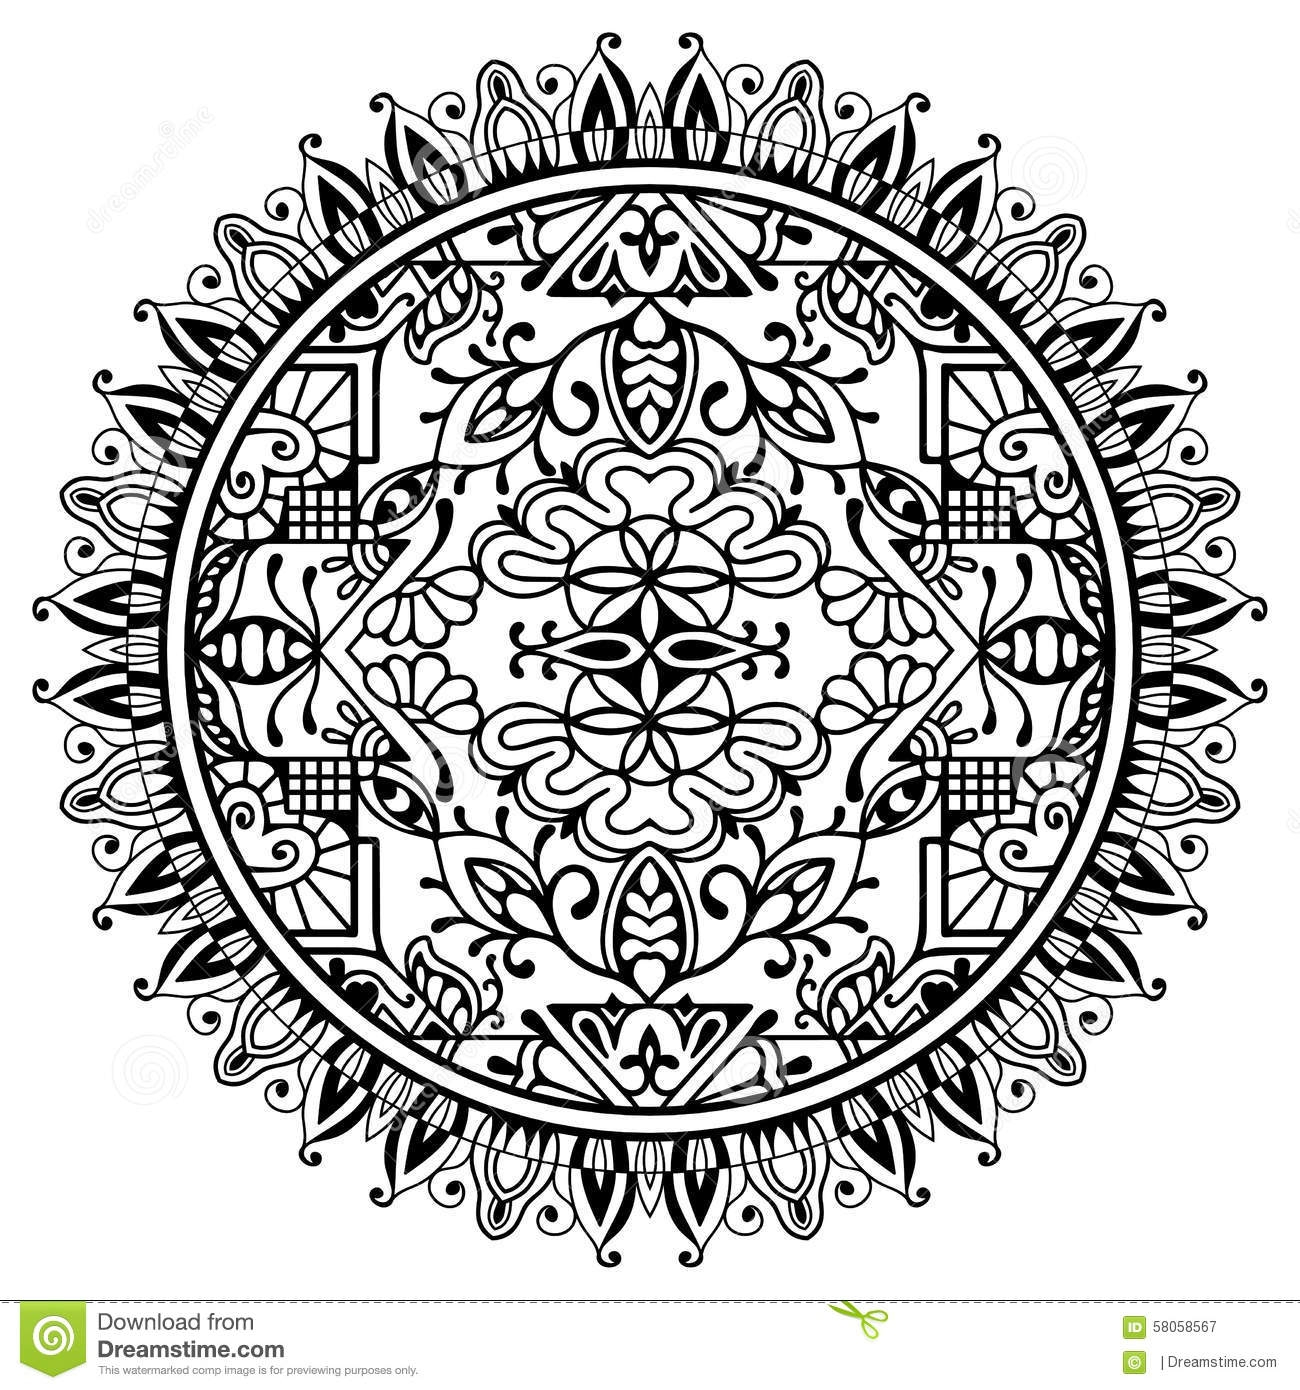 free spring coloring pages - stock photo black white mandala tribal ethnic ornament vector islamic arabic indian pattern image